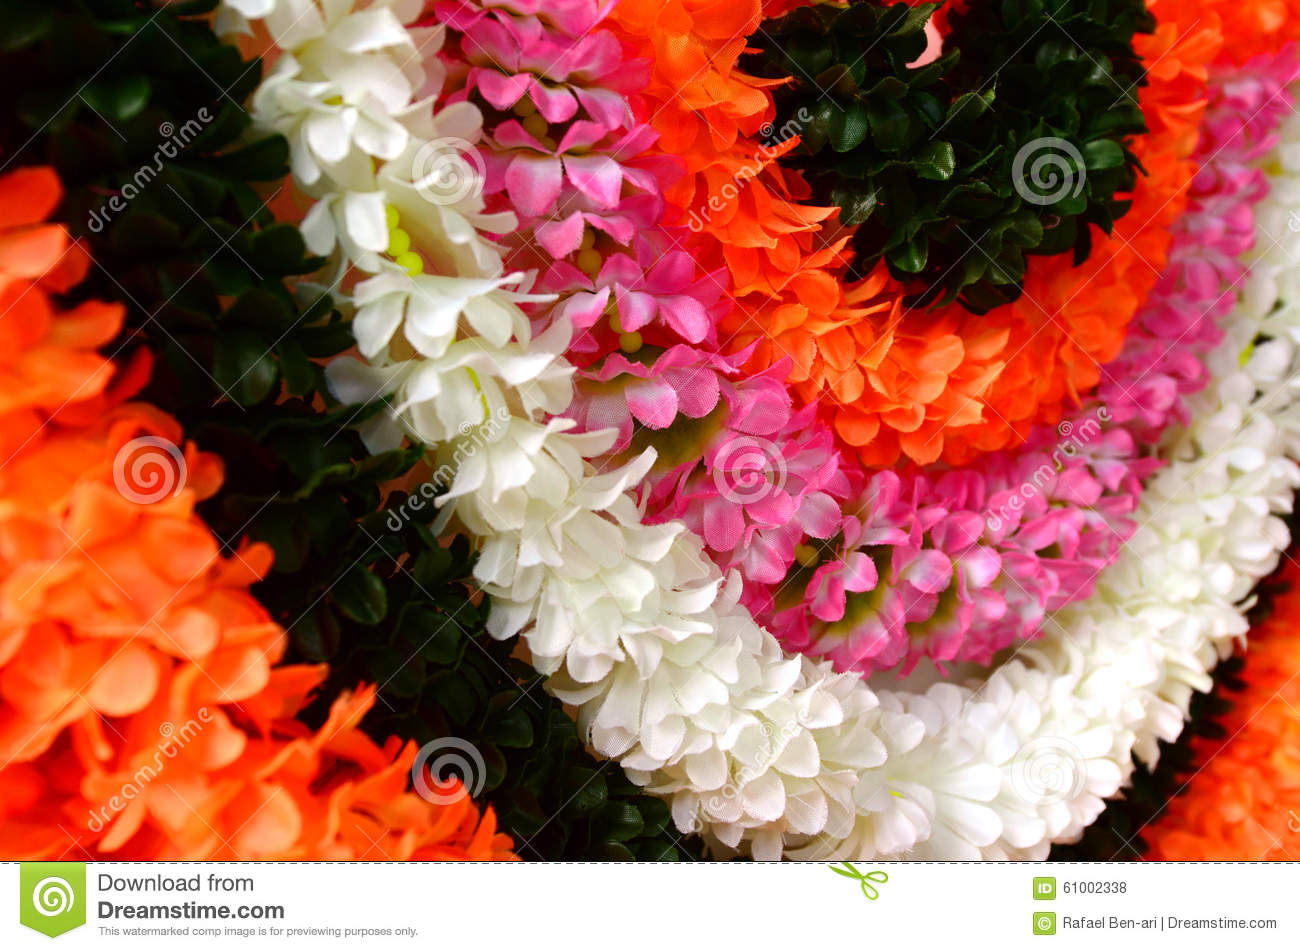 Indian Festival Decoration Flowers Decoration For Indian Festival Stock Photo Image 61001970